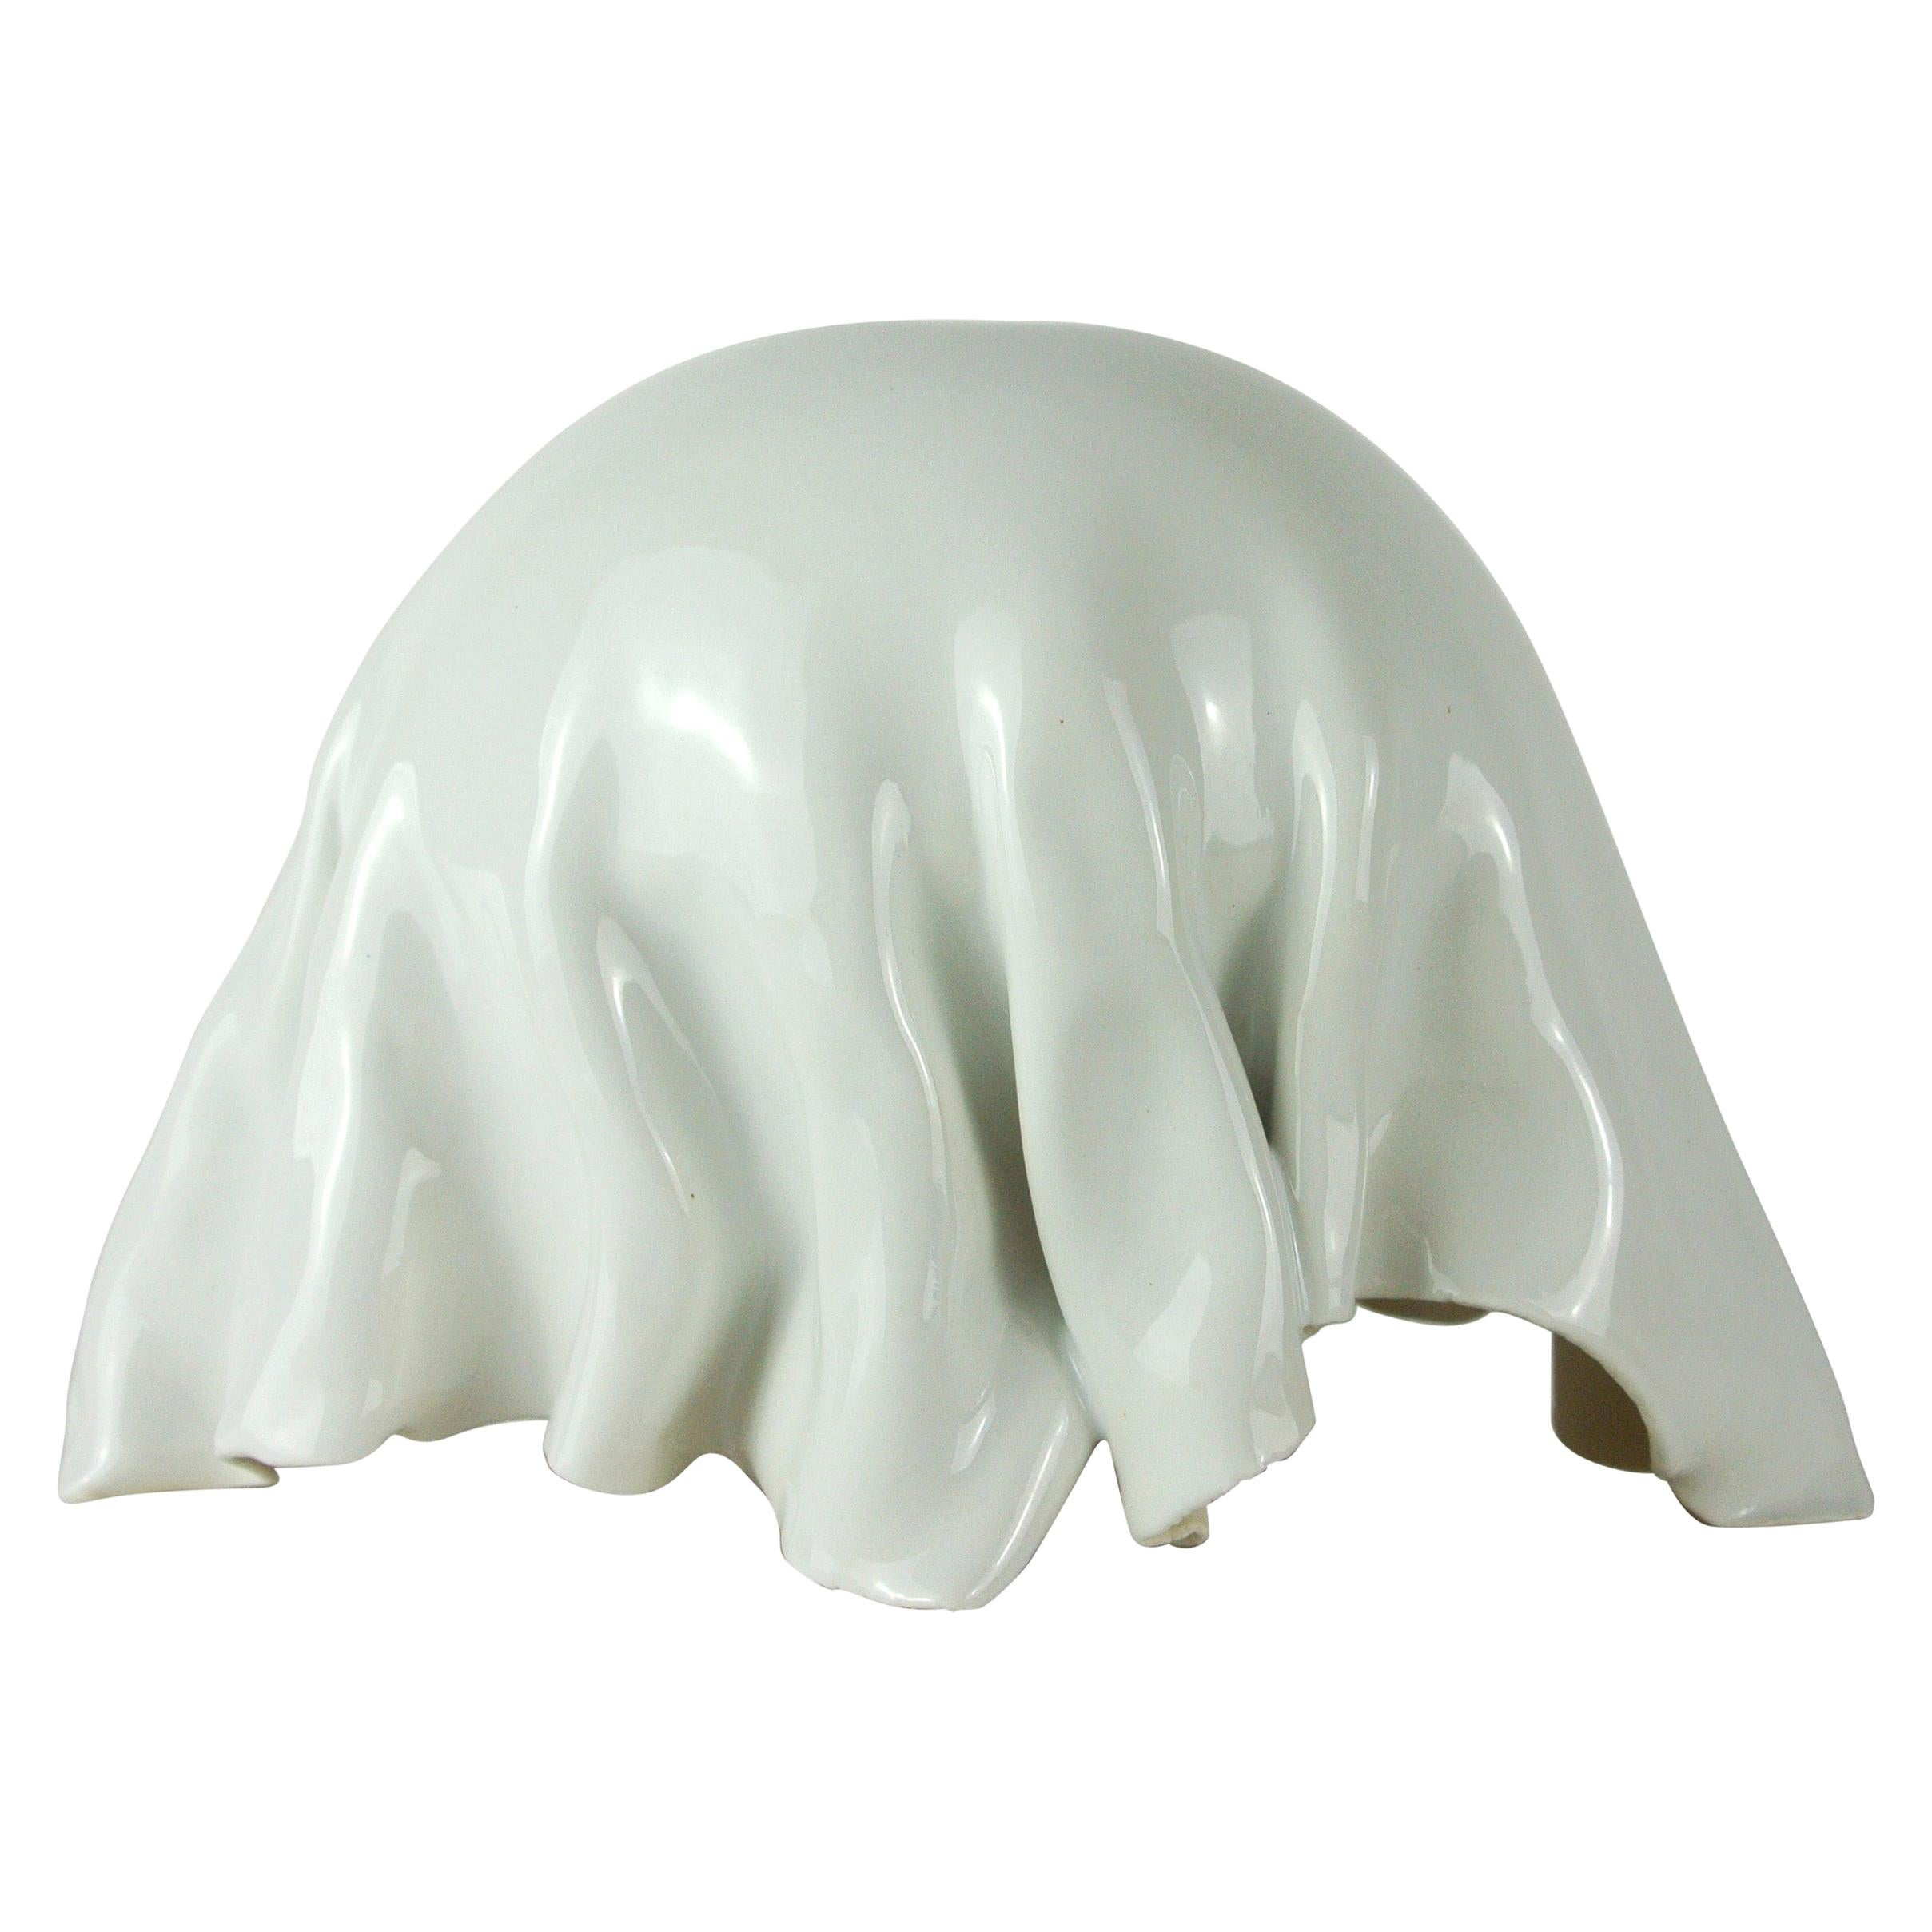 Contemporary White Porcelain Object by Danish Artist Christine Roland